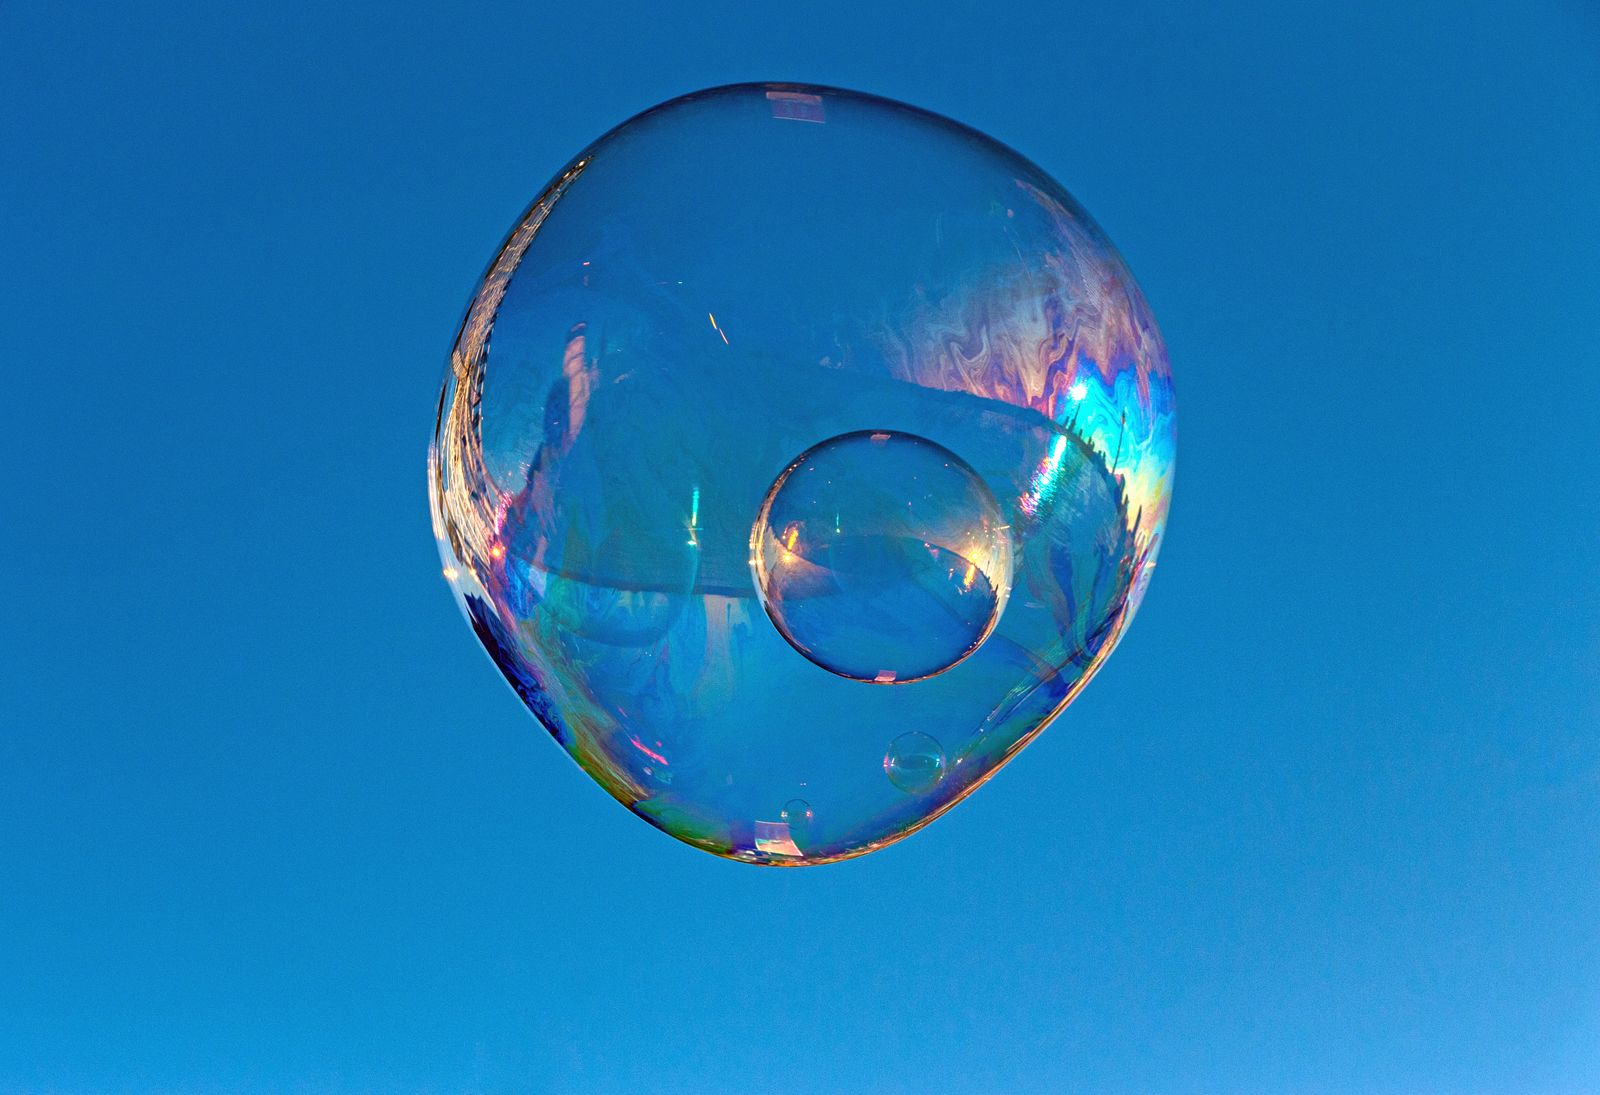 Close-Up Of Soap Bubble Against Clear Blue Sky